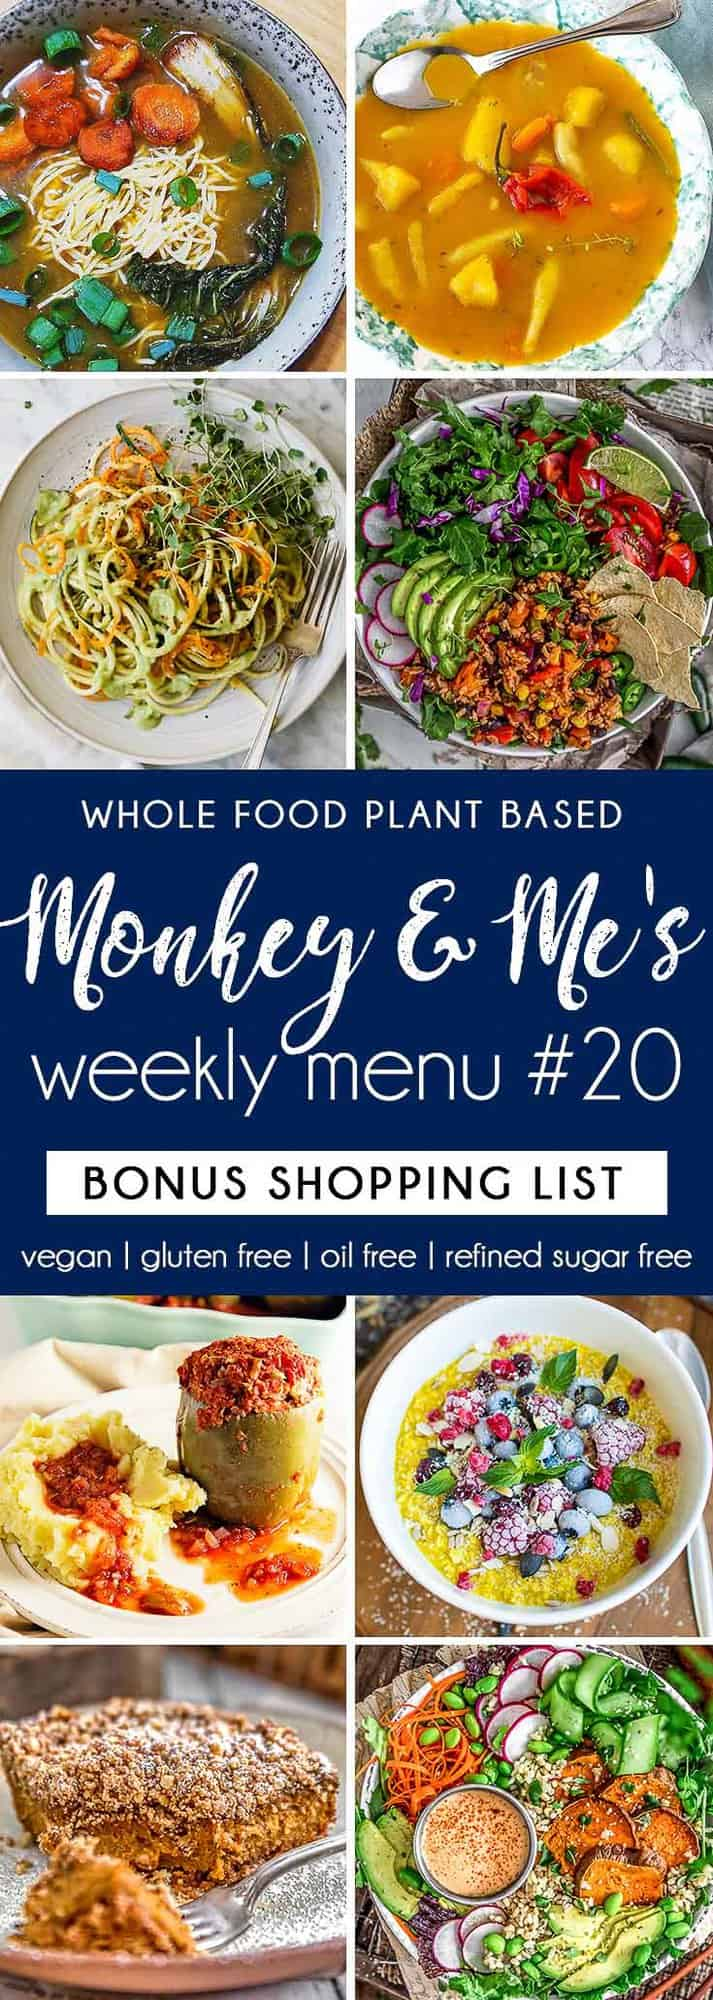 Monkey and Me's Menu featuring 8 recipes